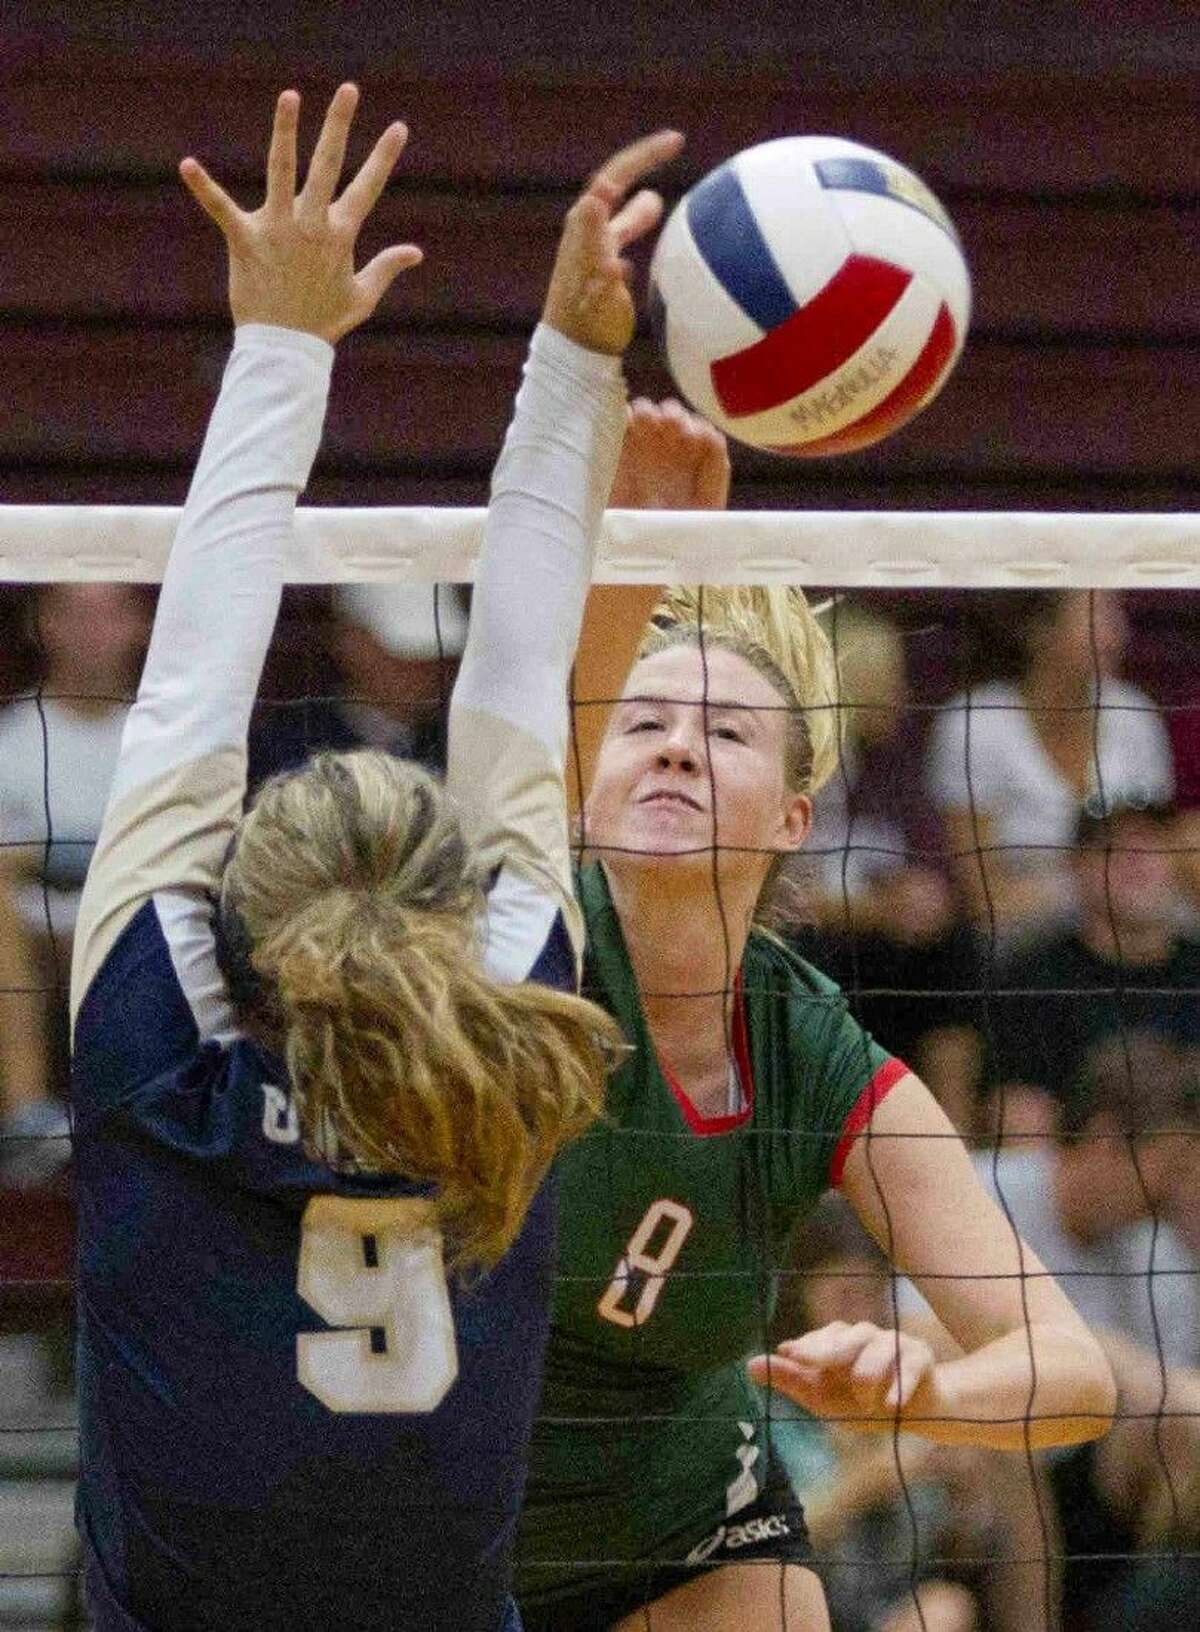 The Woodlands' Rachel Reed (8) gets a shot past Klein Collins' Brooke Regalado (9) during a game at the Magnolia Volley-Battle at Magnolia High School Saturday. To view or purchase this photo and others like it, visit HCNpics.com.